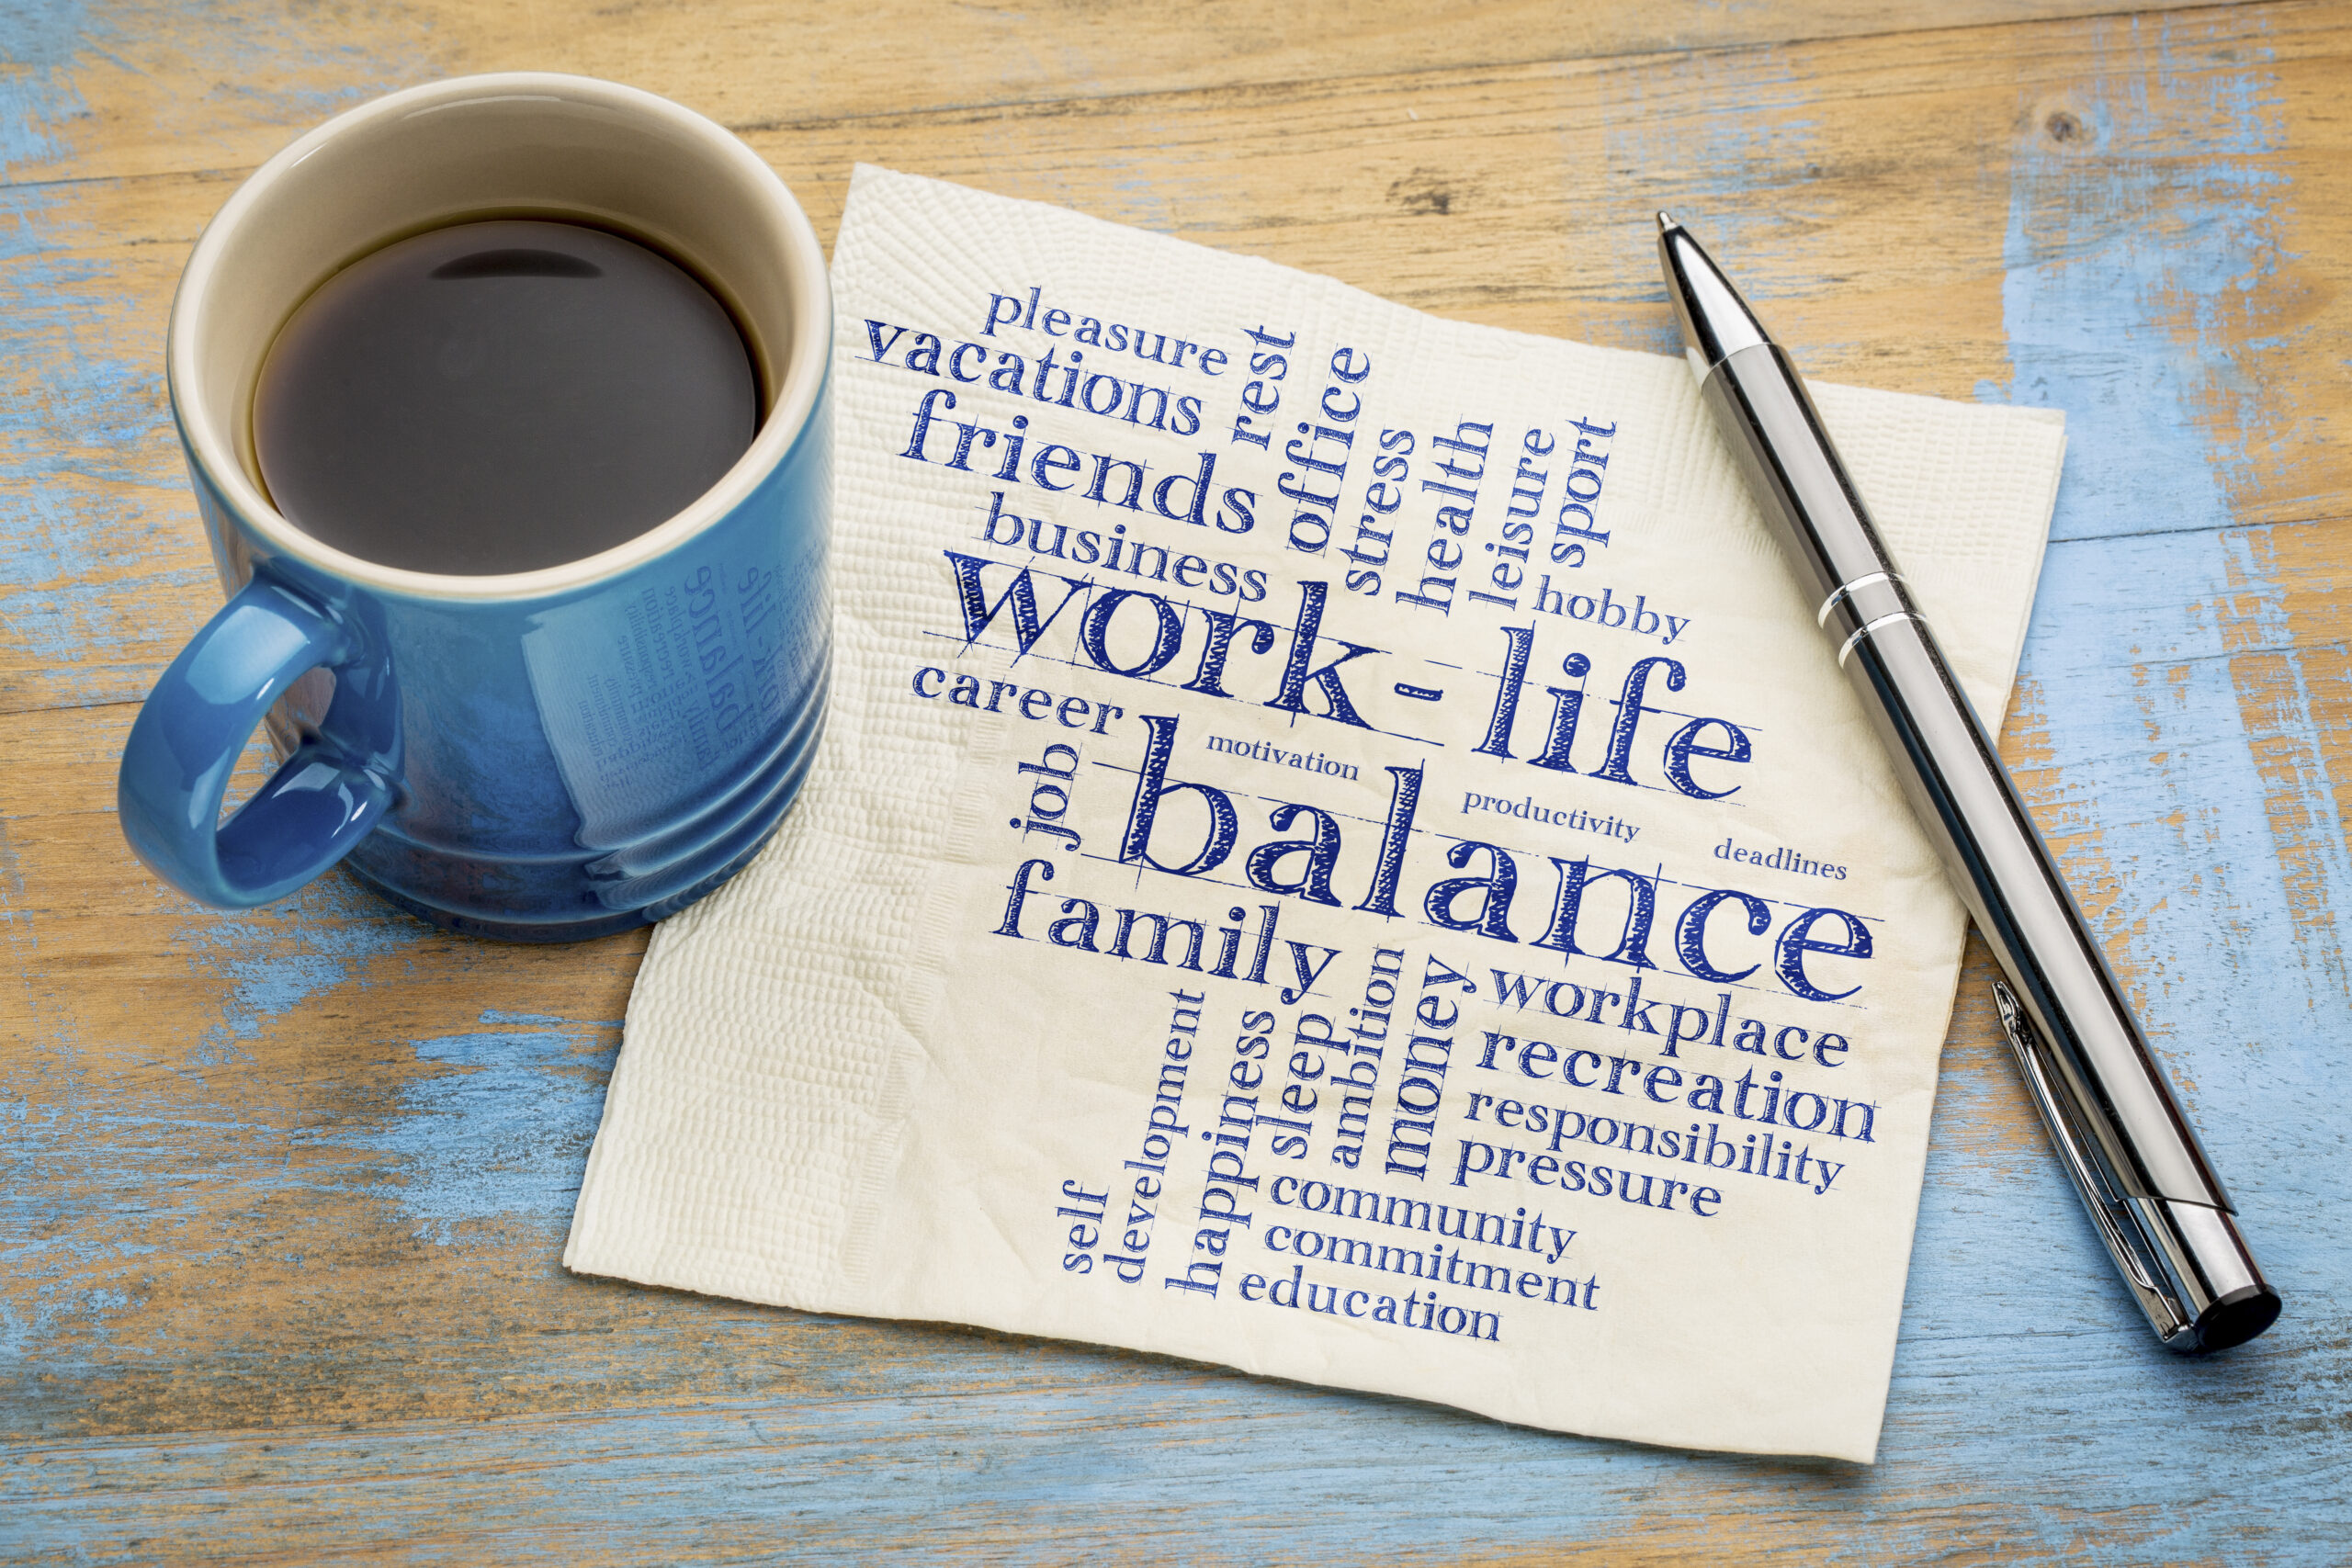 a cup beside a paper with work & life balance written on it